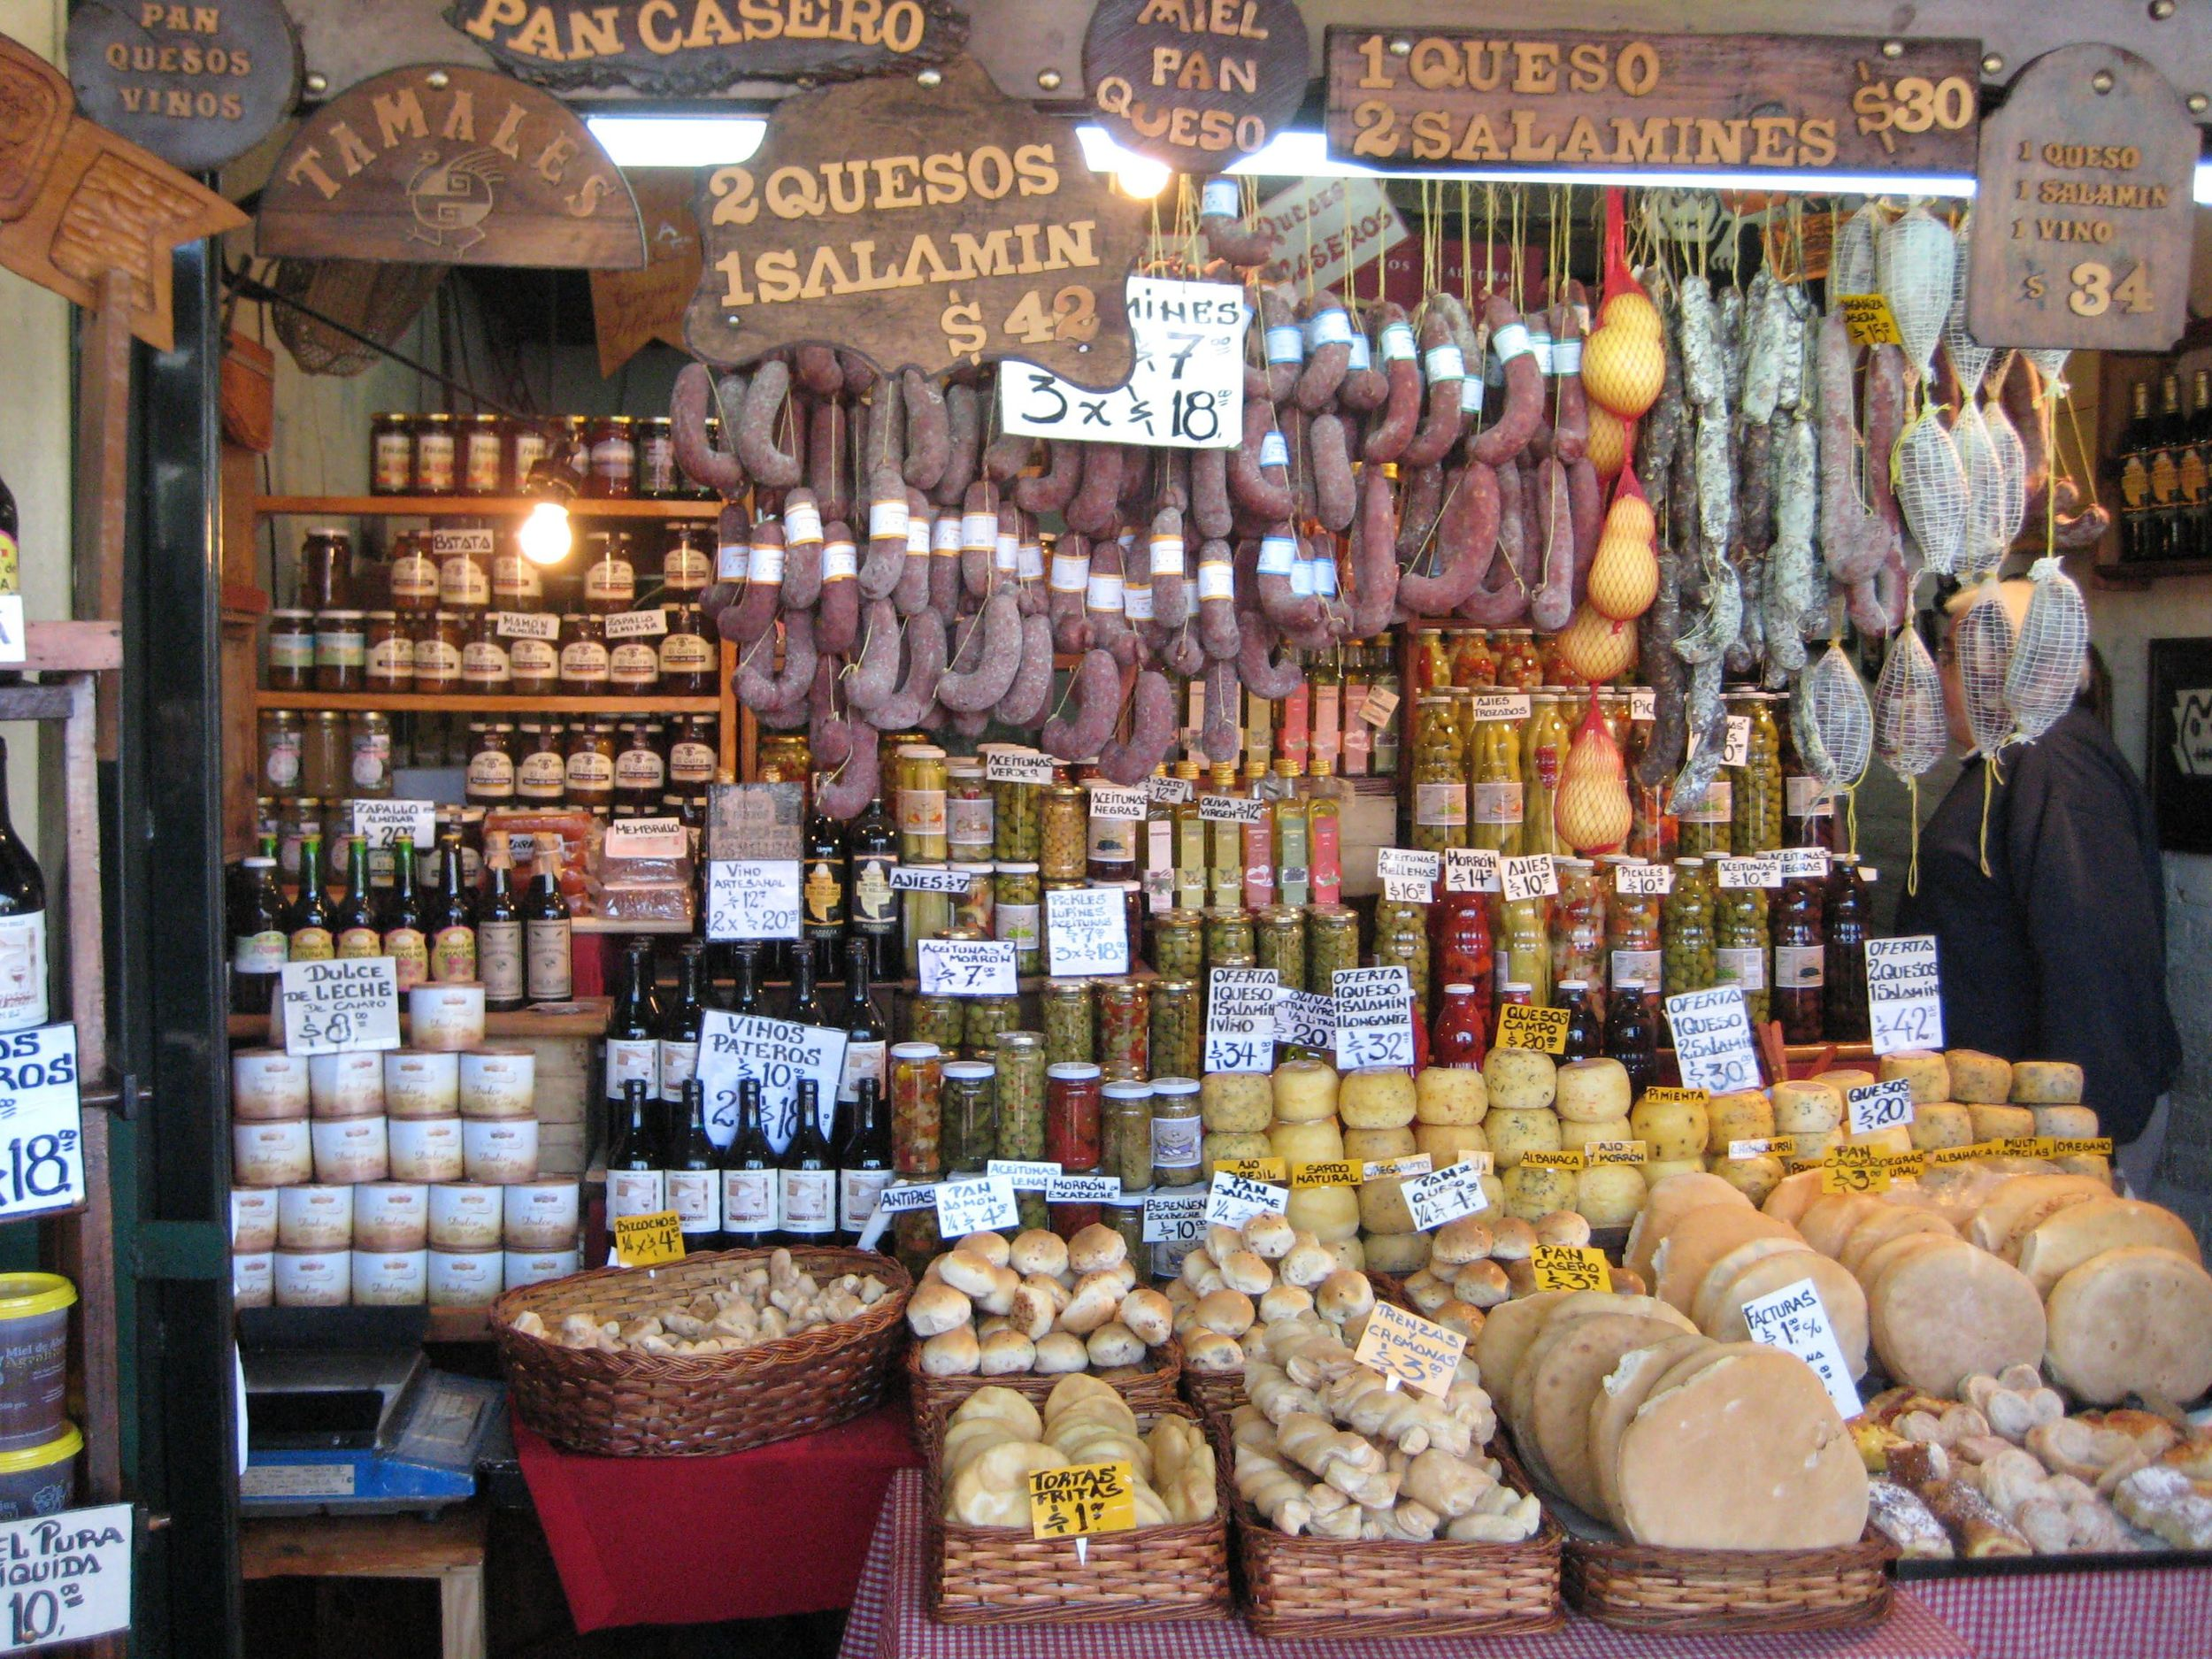 Cheese, olives, bread and salami shop